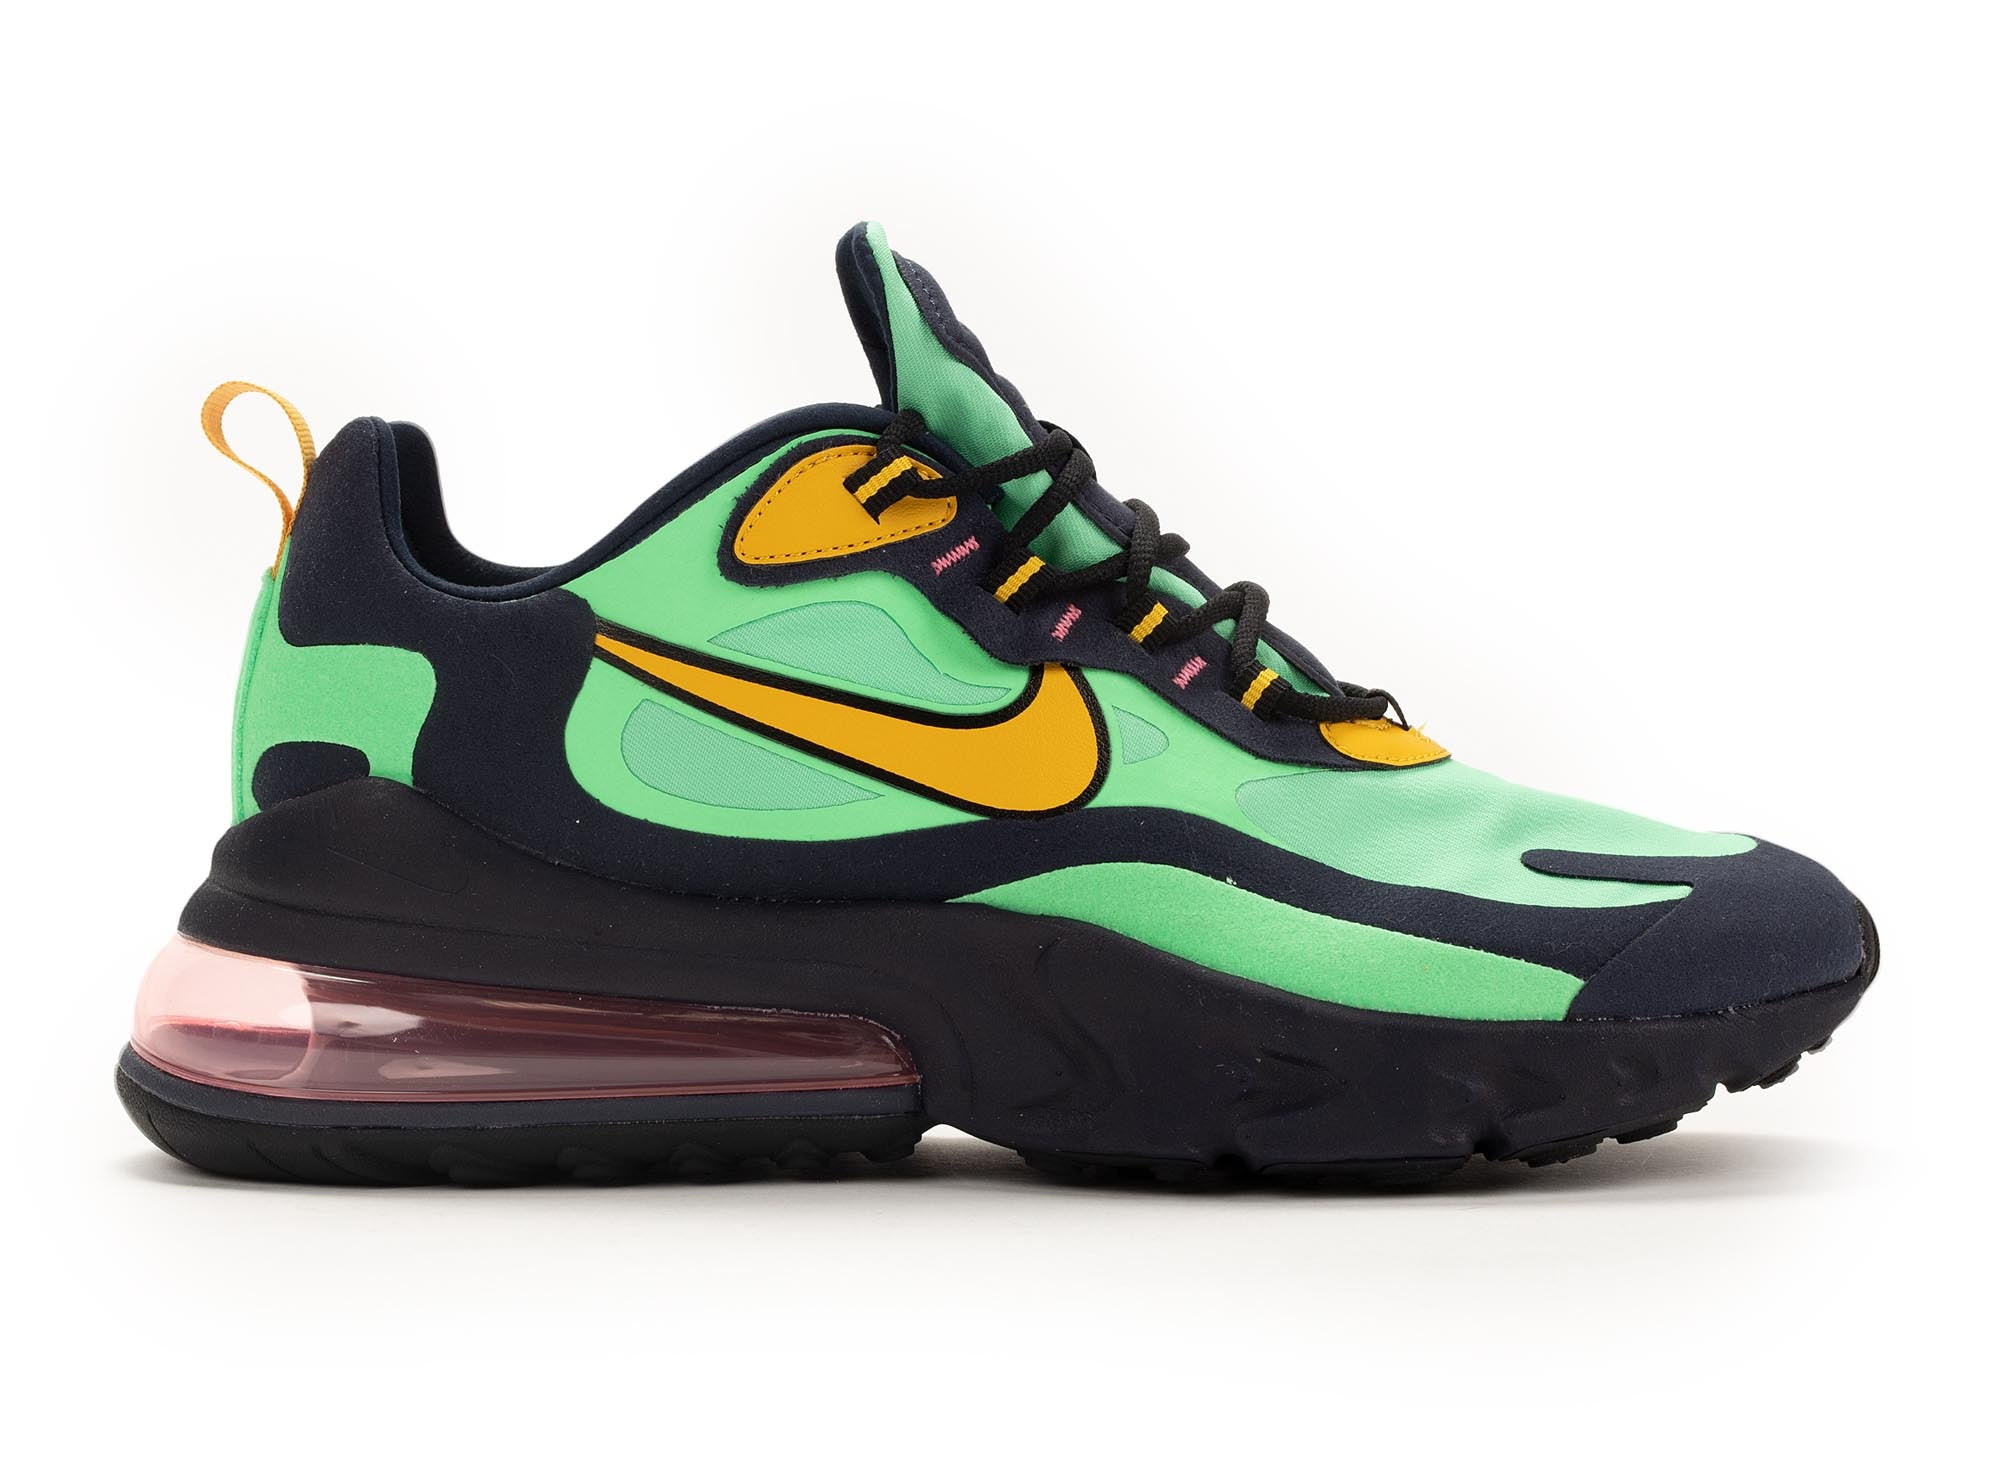 NIKE AIR MAX 270 REACT (POP ART)